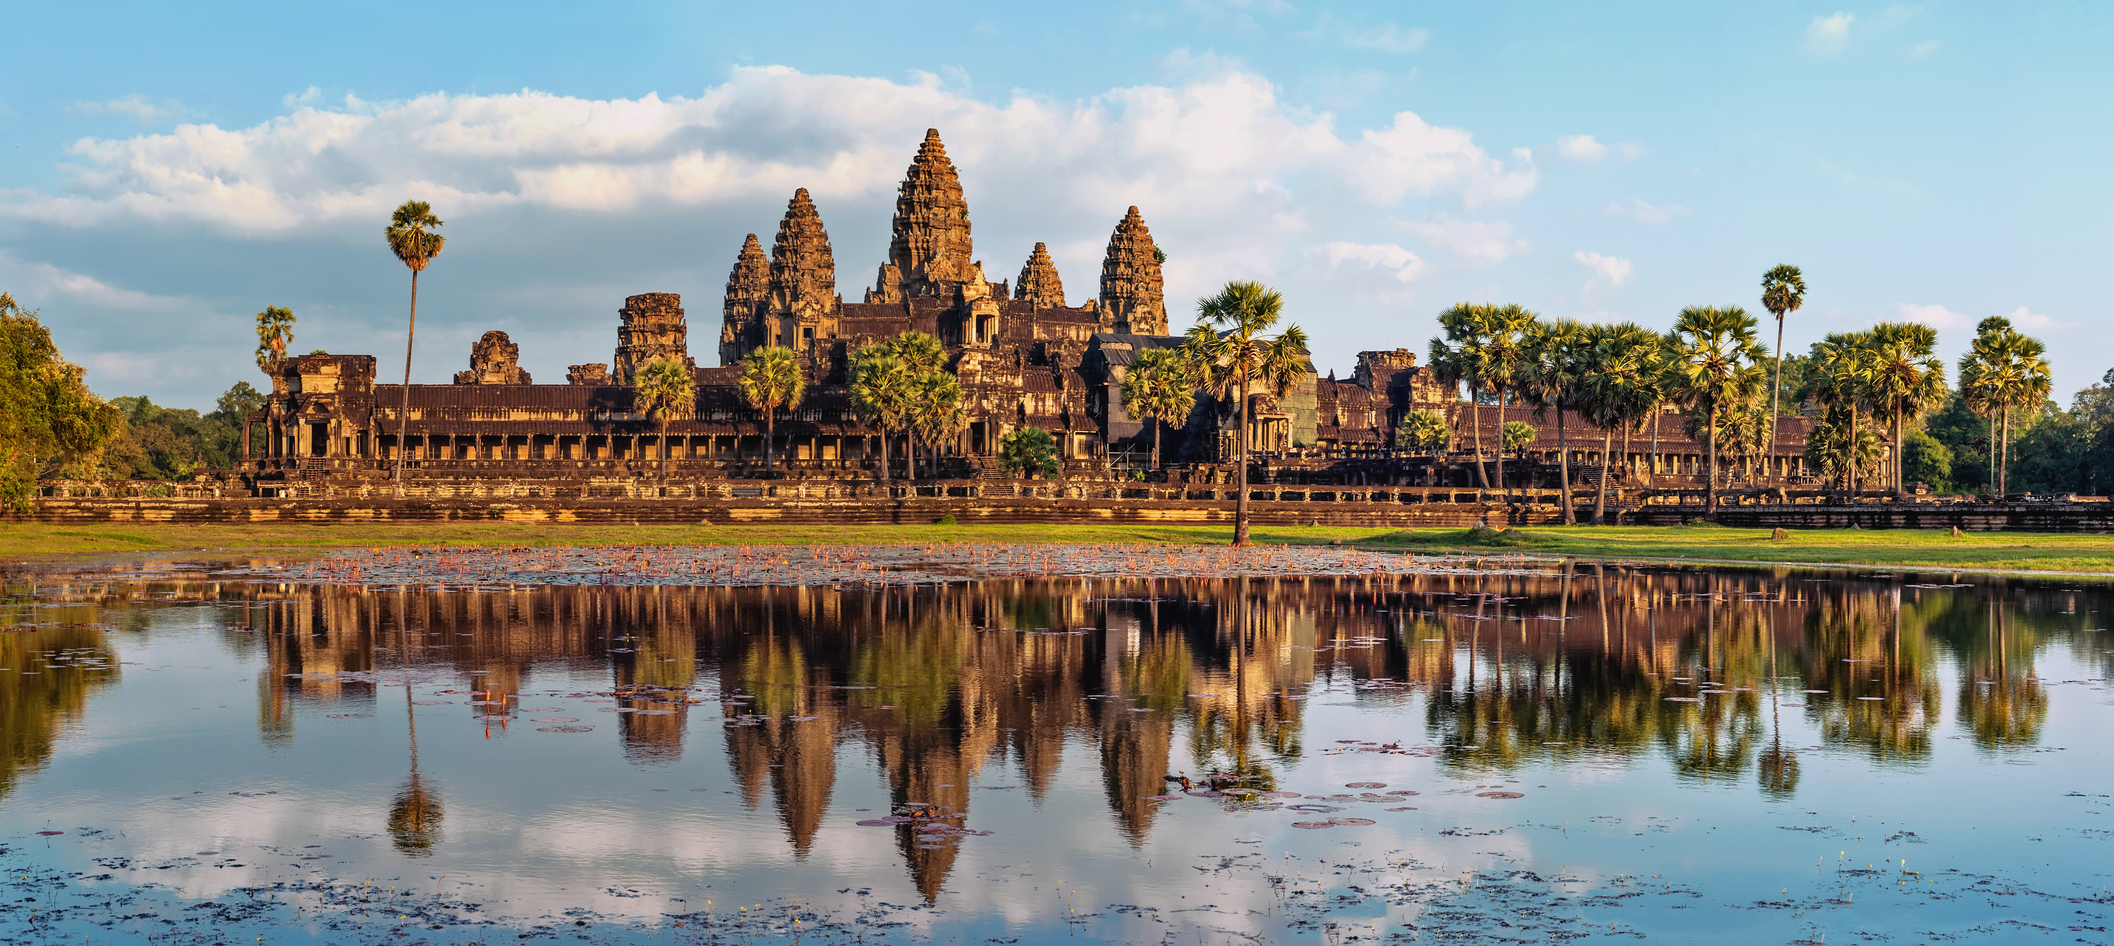 6 Reasons I Loved Cambodia Angkor Wat